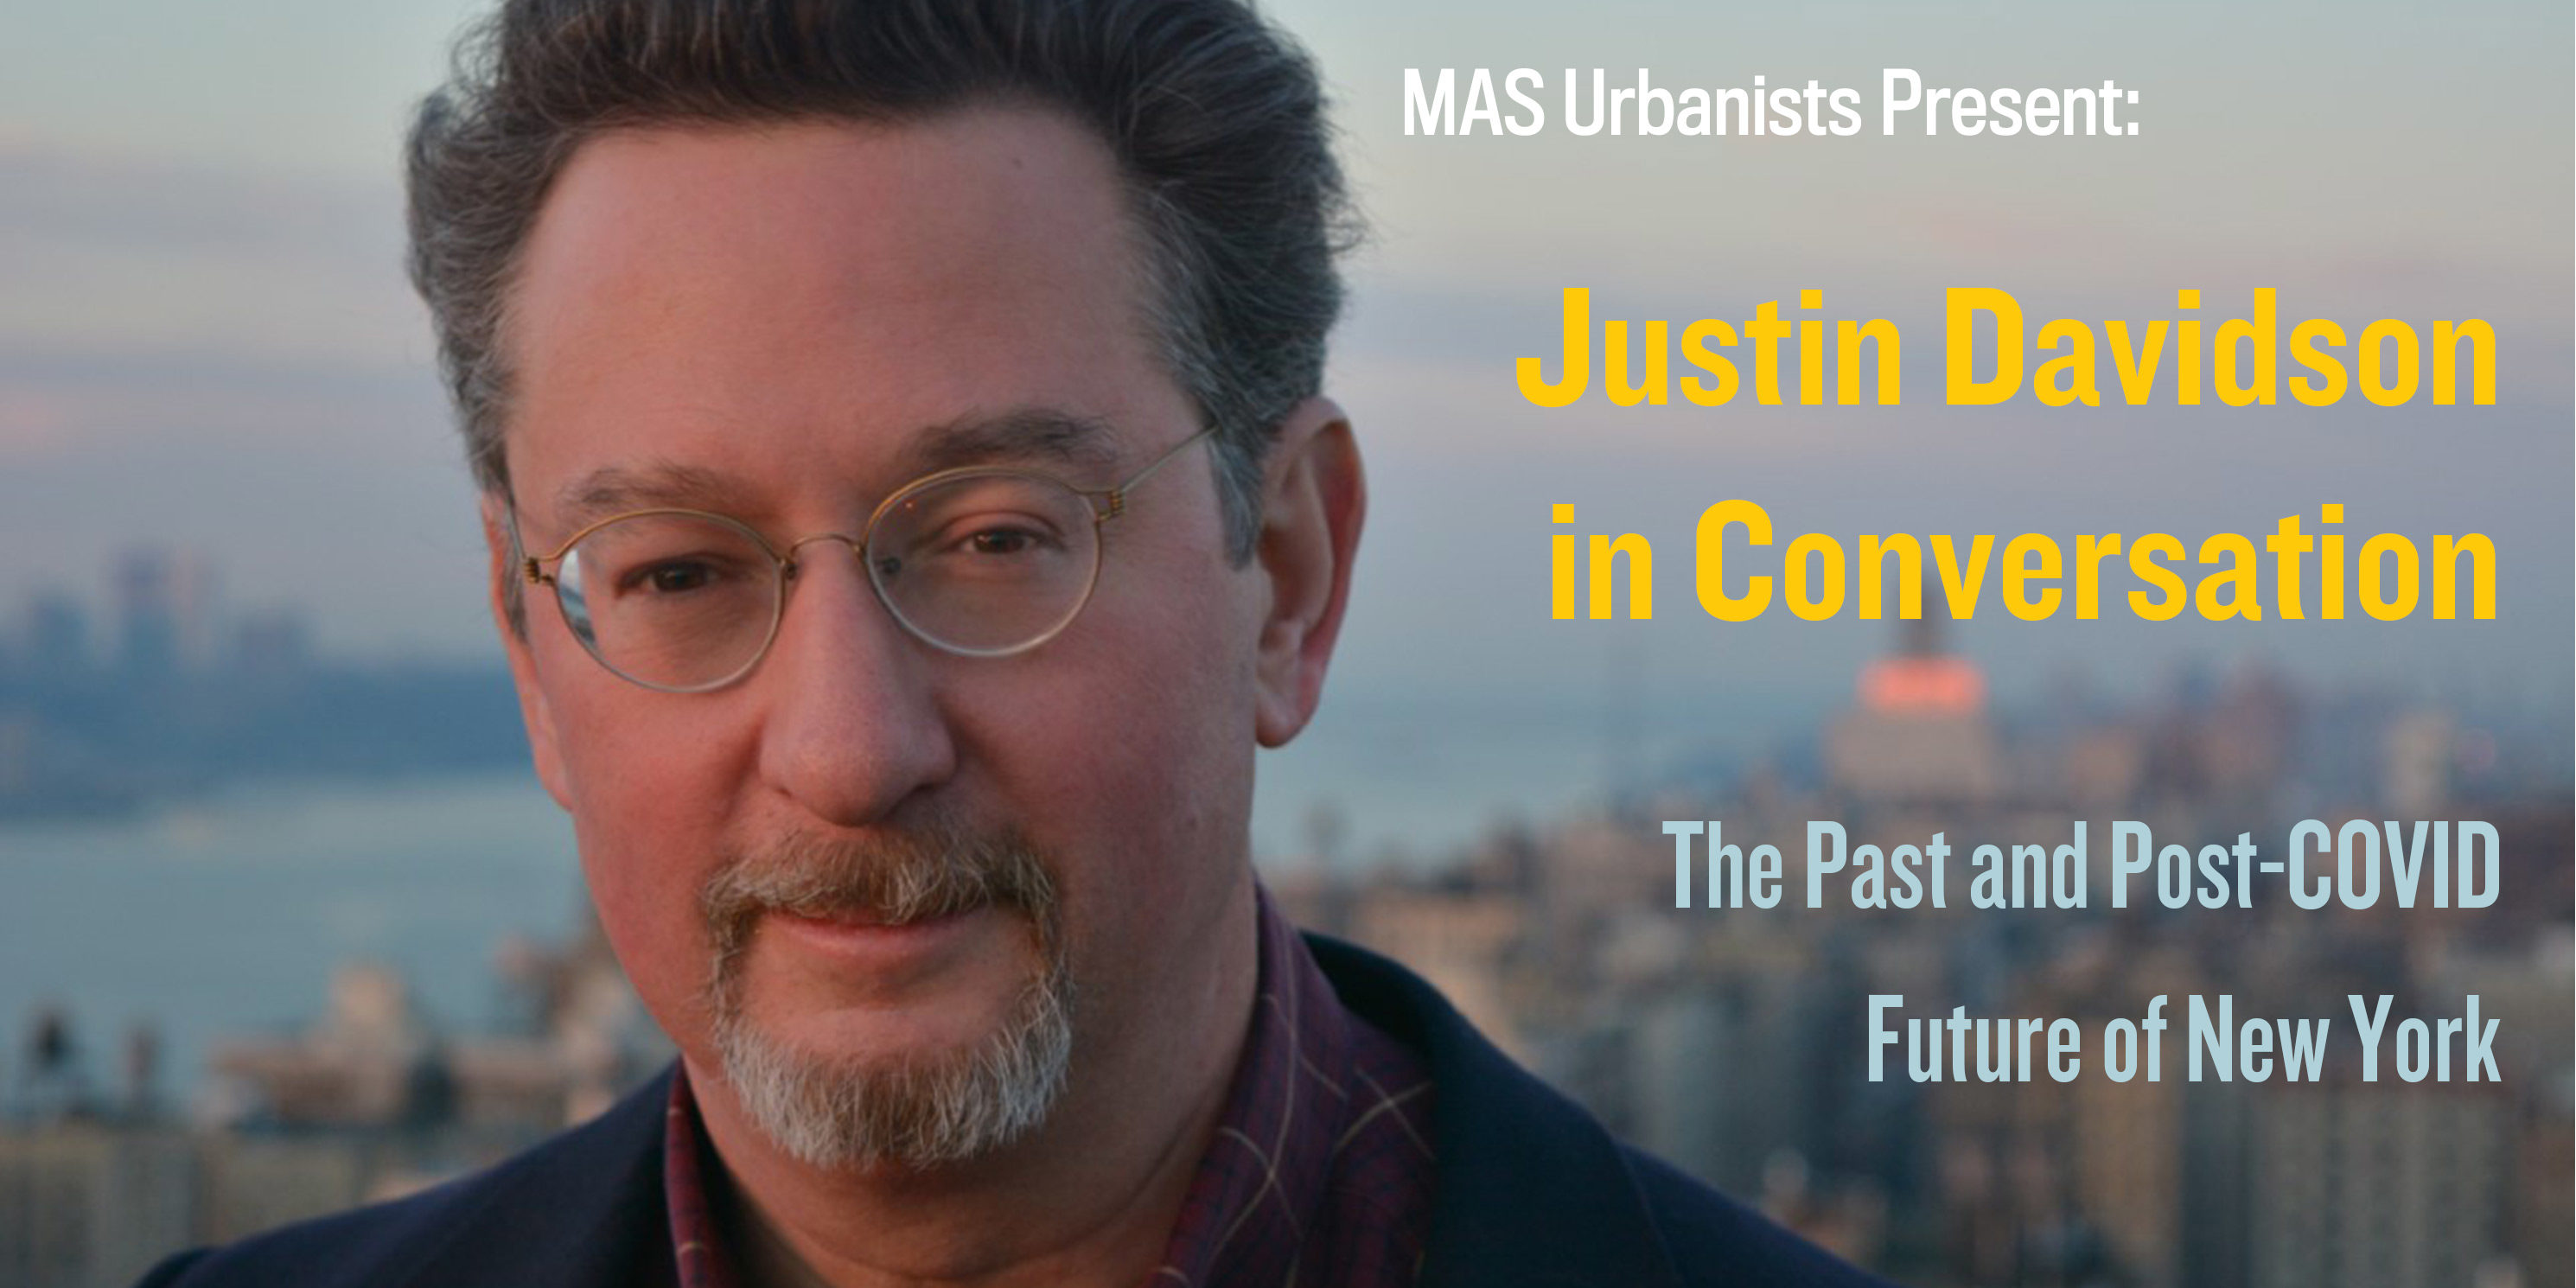 advertisement for the event Justin Davidson in Conversation